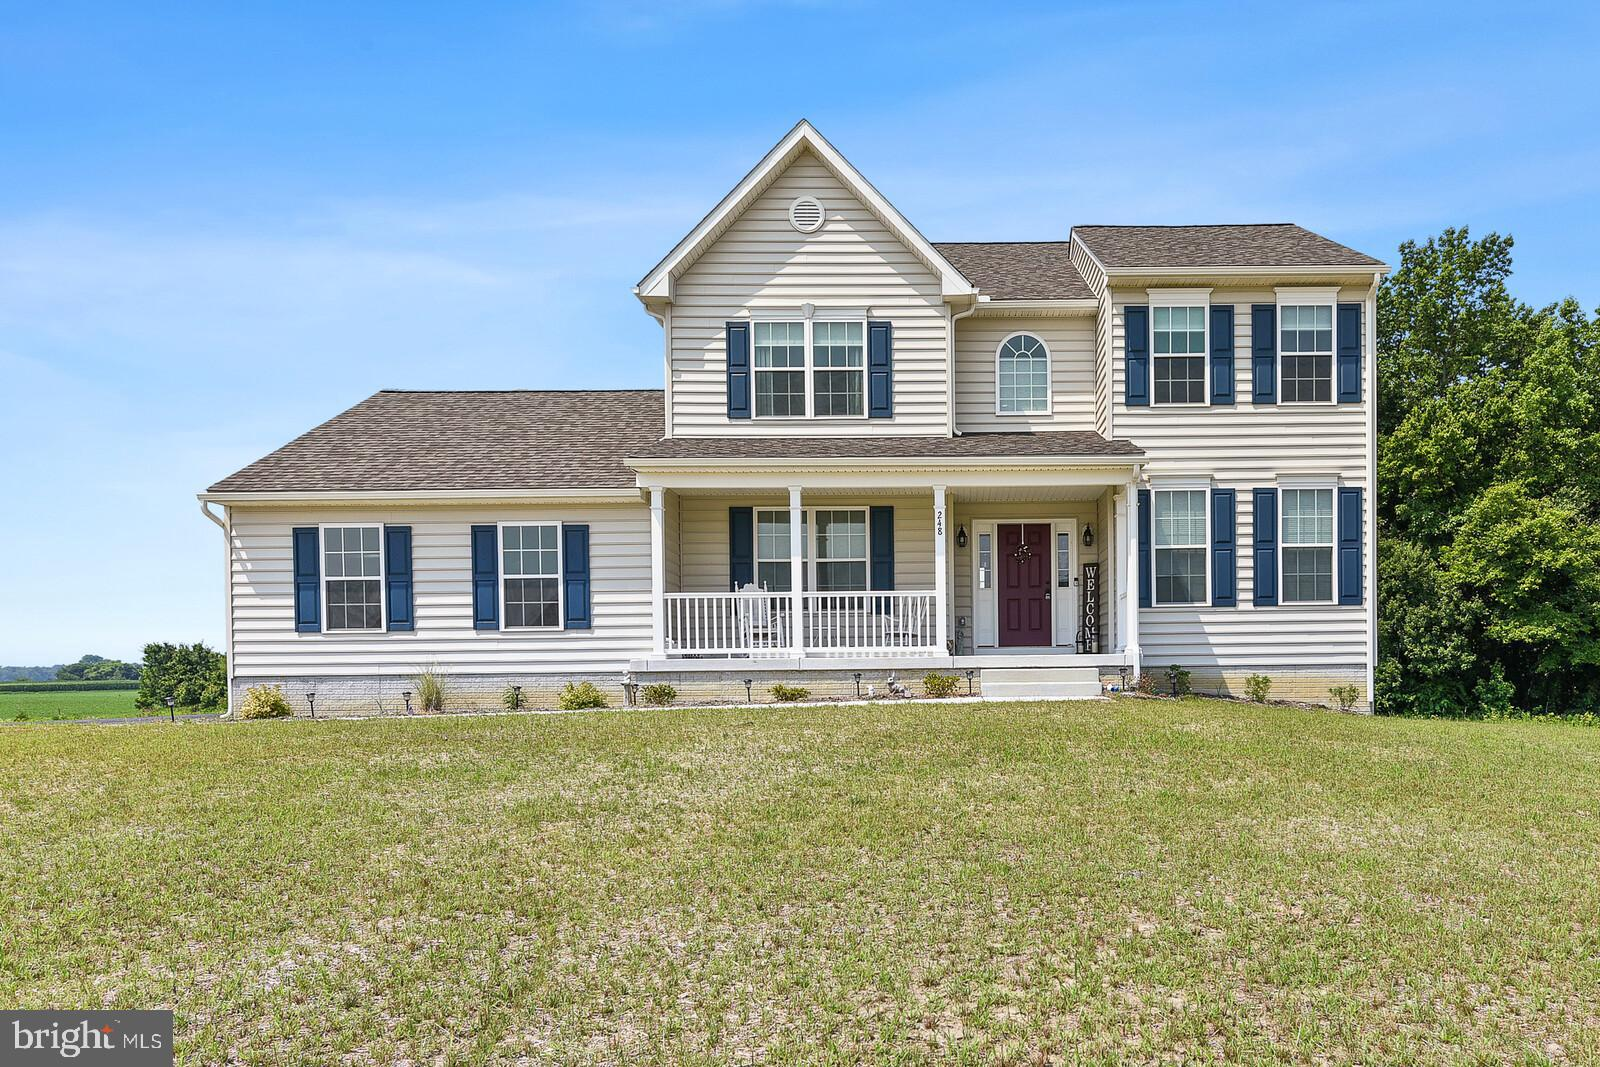 This six month old Grant lol model in the very popular Jockey Hollow neighborhood is now available. Please come see this upgraded four bedroom two and a half bath on .80 of an acre! Plenty of room to possibly add a pool later. This beautiful setting in the quiet town of Clayton is just what you need to relax! Many upgrades in this home make it a showstopper. Gleaming hardwoods throughout the first floor, a sunroom, stainless steel appliances and granite countertops just to name a few! Brand new custom shades have been added to the windows totaling over more than $7,000.00! When the home  was built in 2020 a whole house generator hook up was installed. The unfinished basement has a walkout with just a few steps brings in a ton of light! The way the basement is designed, would make it very easy to finish. Dilsheimer is a regional builder known for their superior quality and this Grand II model has always been a customer favorite.  Additional features include an extended tiled primary shower, comfort height countertops and popular cabinet colors.